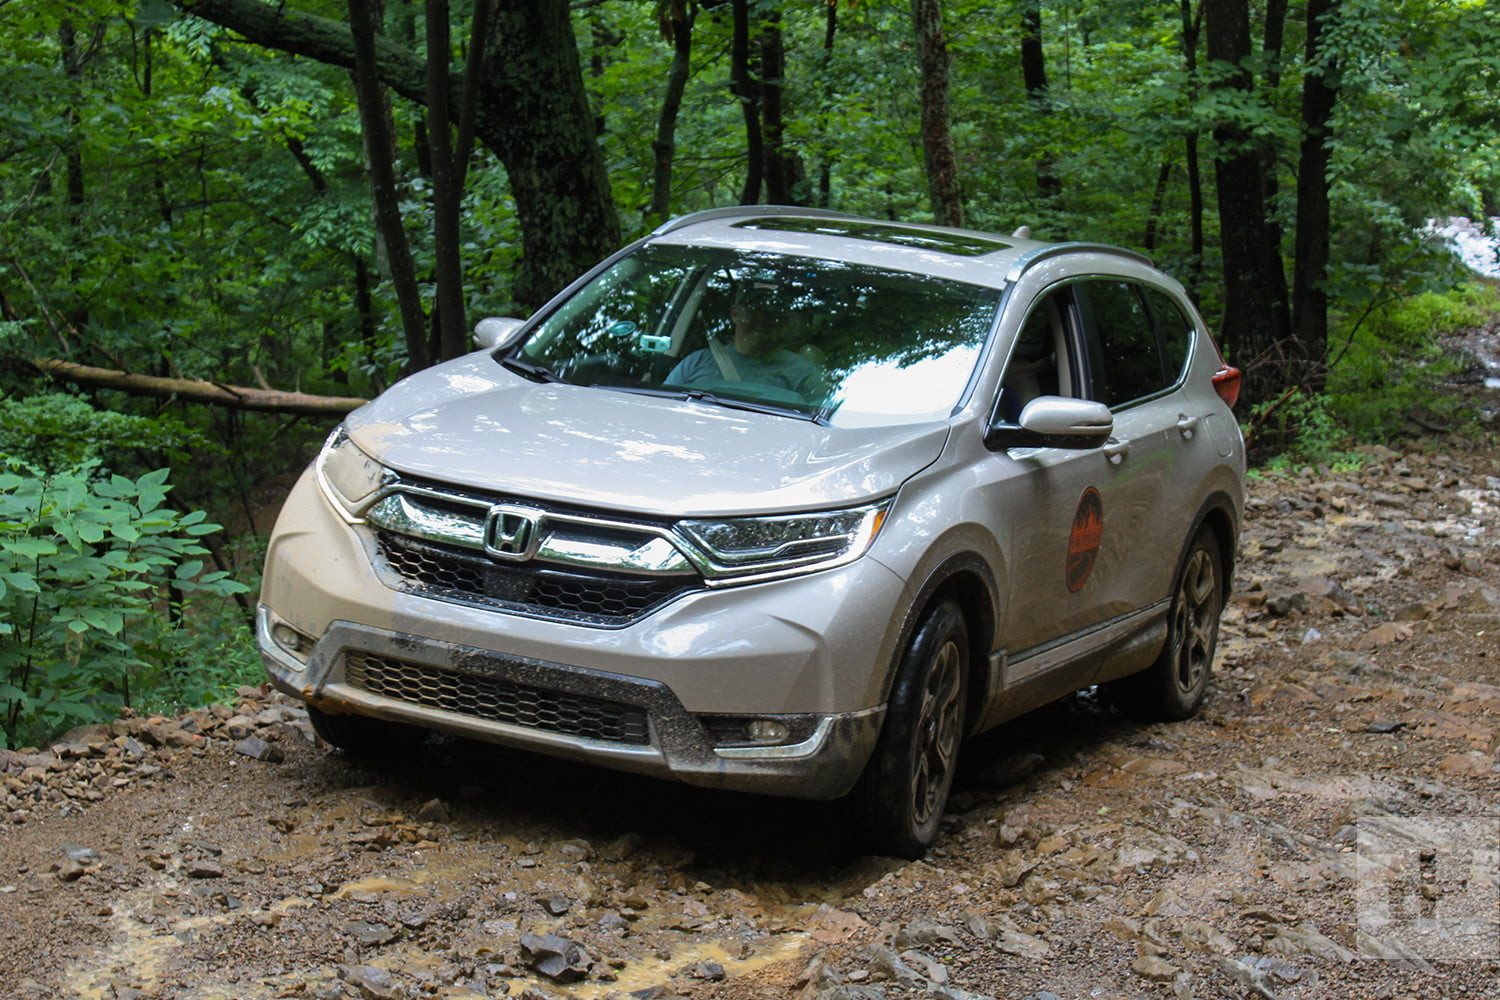 Crv Off Road >> The Best Off Road Crossovers We Tested 7 Crossovers On 4wd Trails